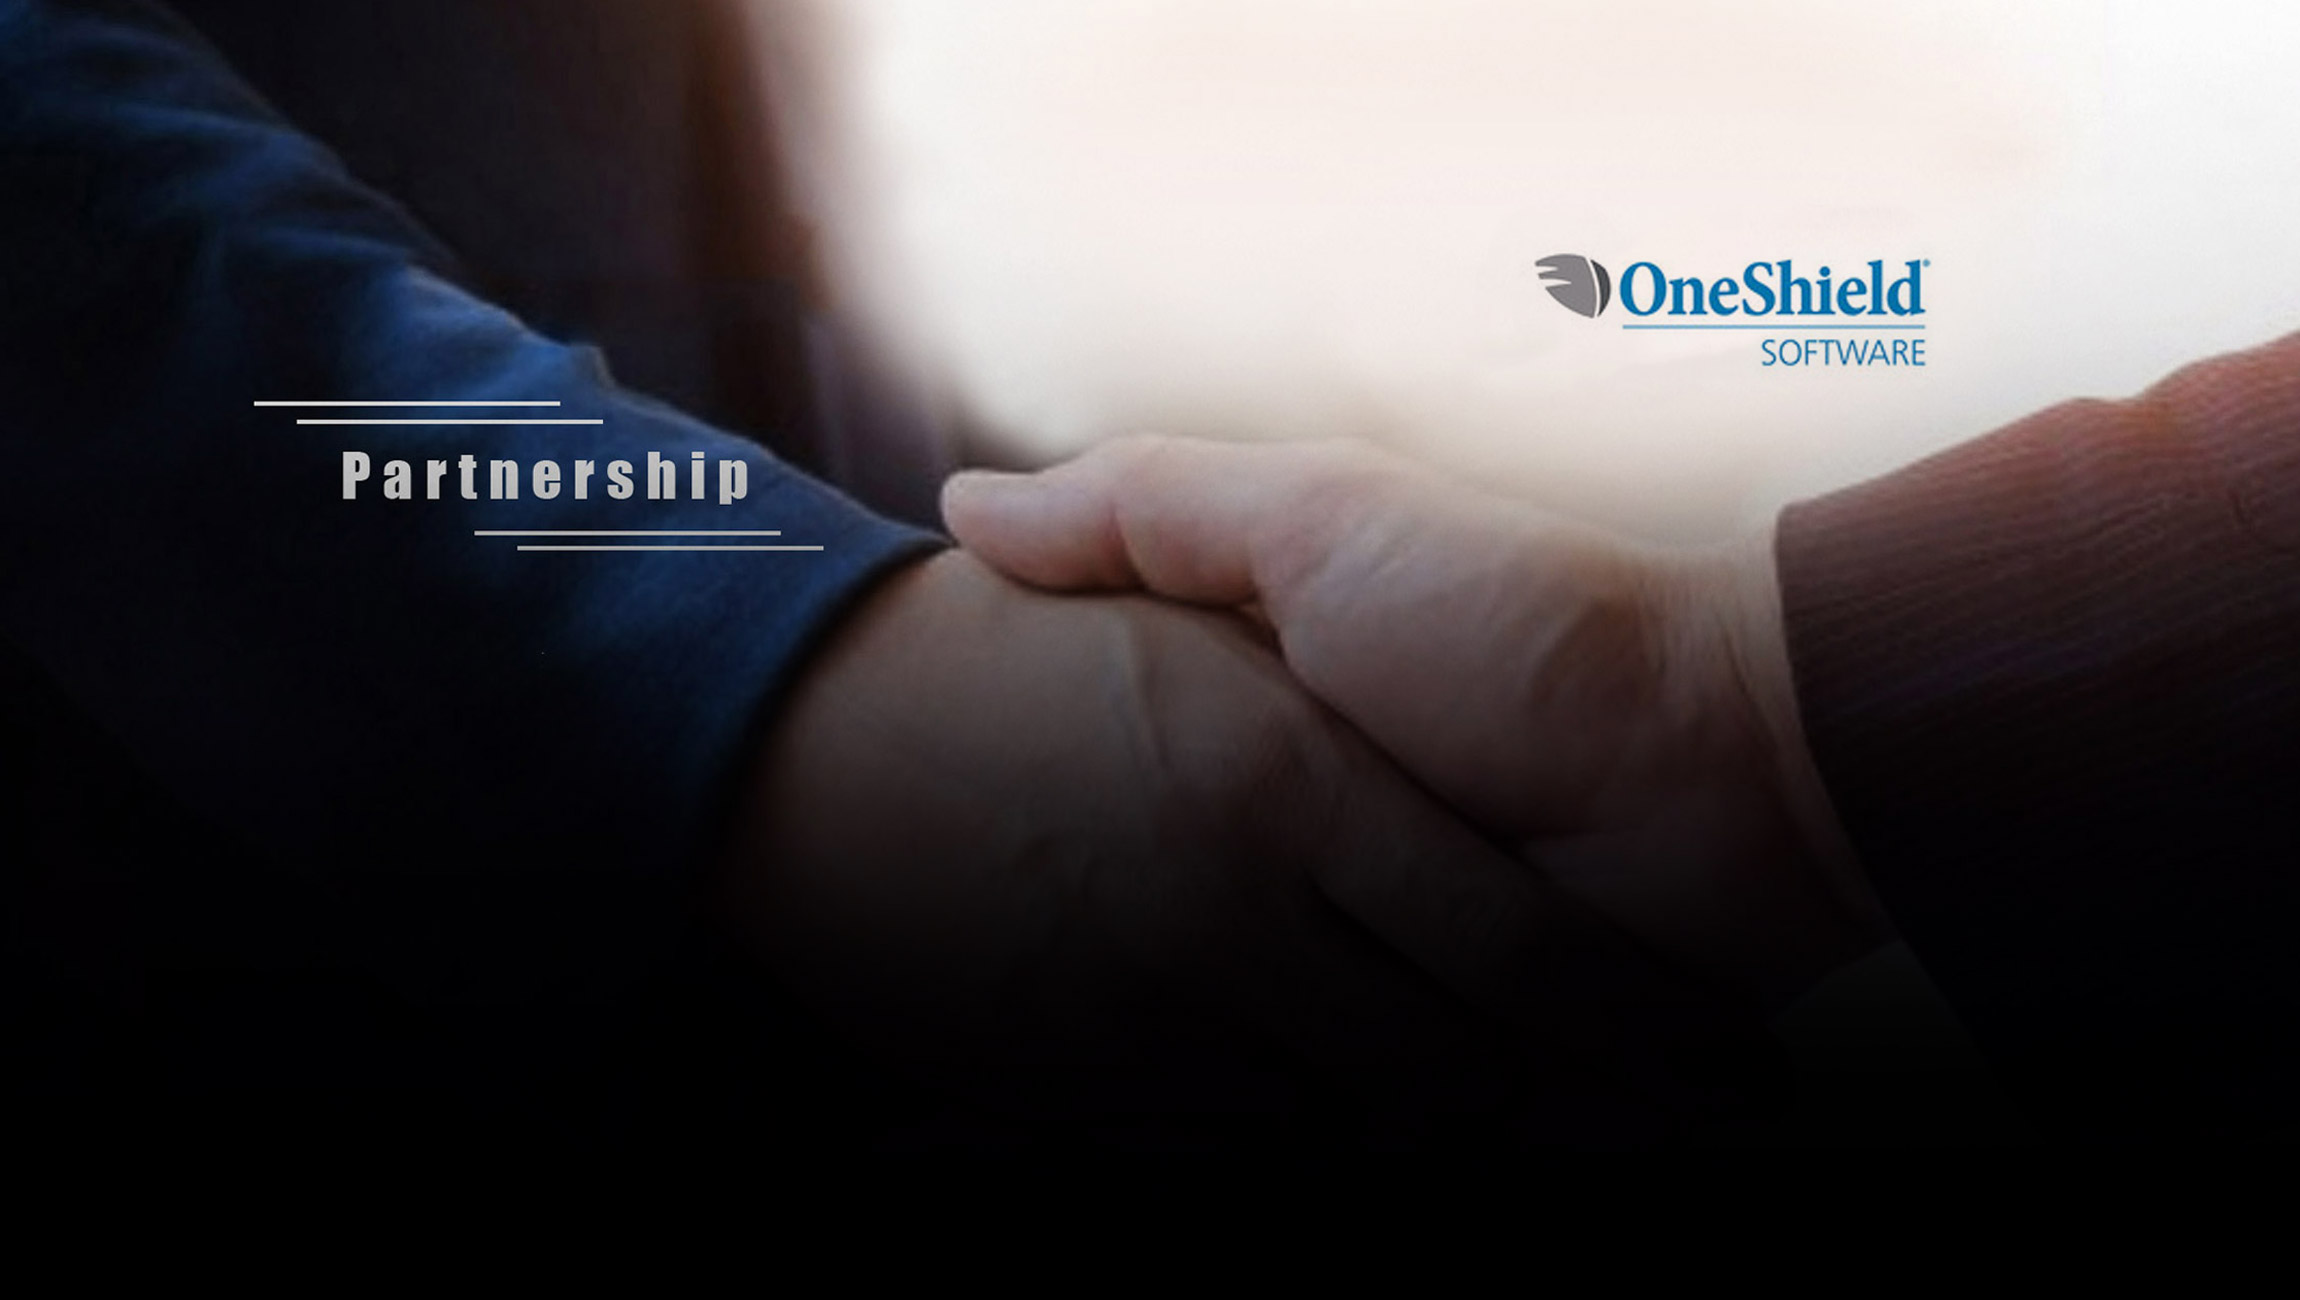 OneShield-Software-Receives-Growth-Investment-Led-by-Bain-Capital-Credit-and-Pacific-Lake-Partners